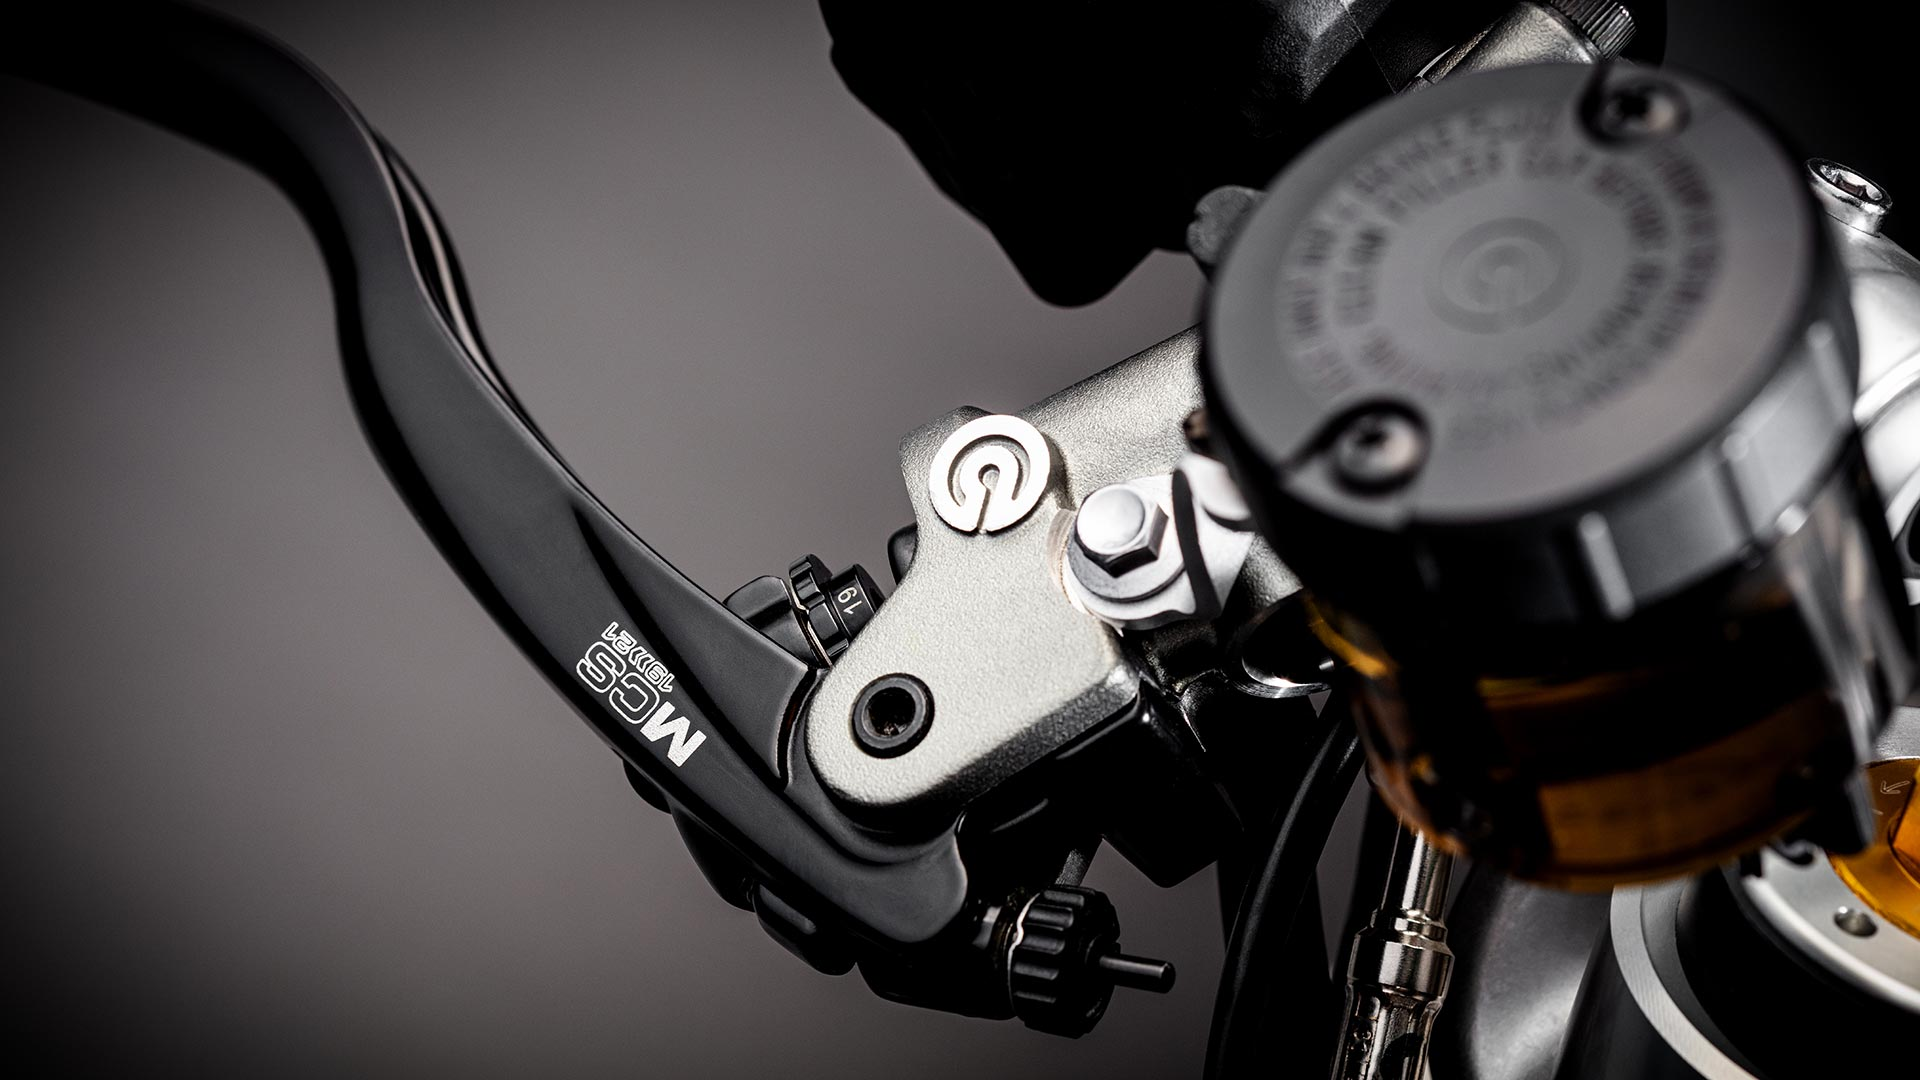 Close-up shot of the Triumph Bobber TFC's front brake lever